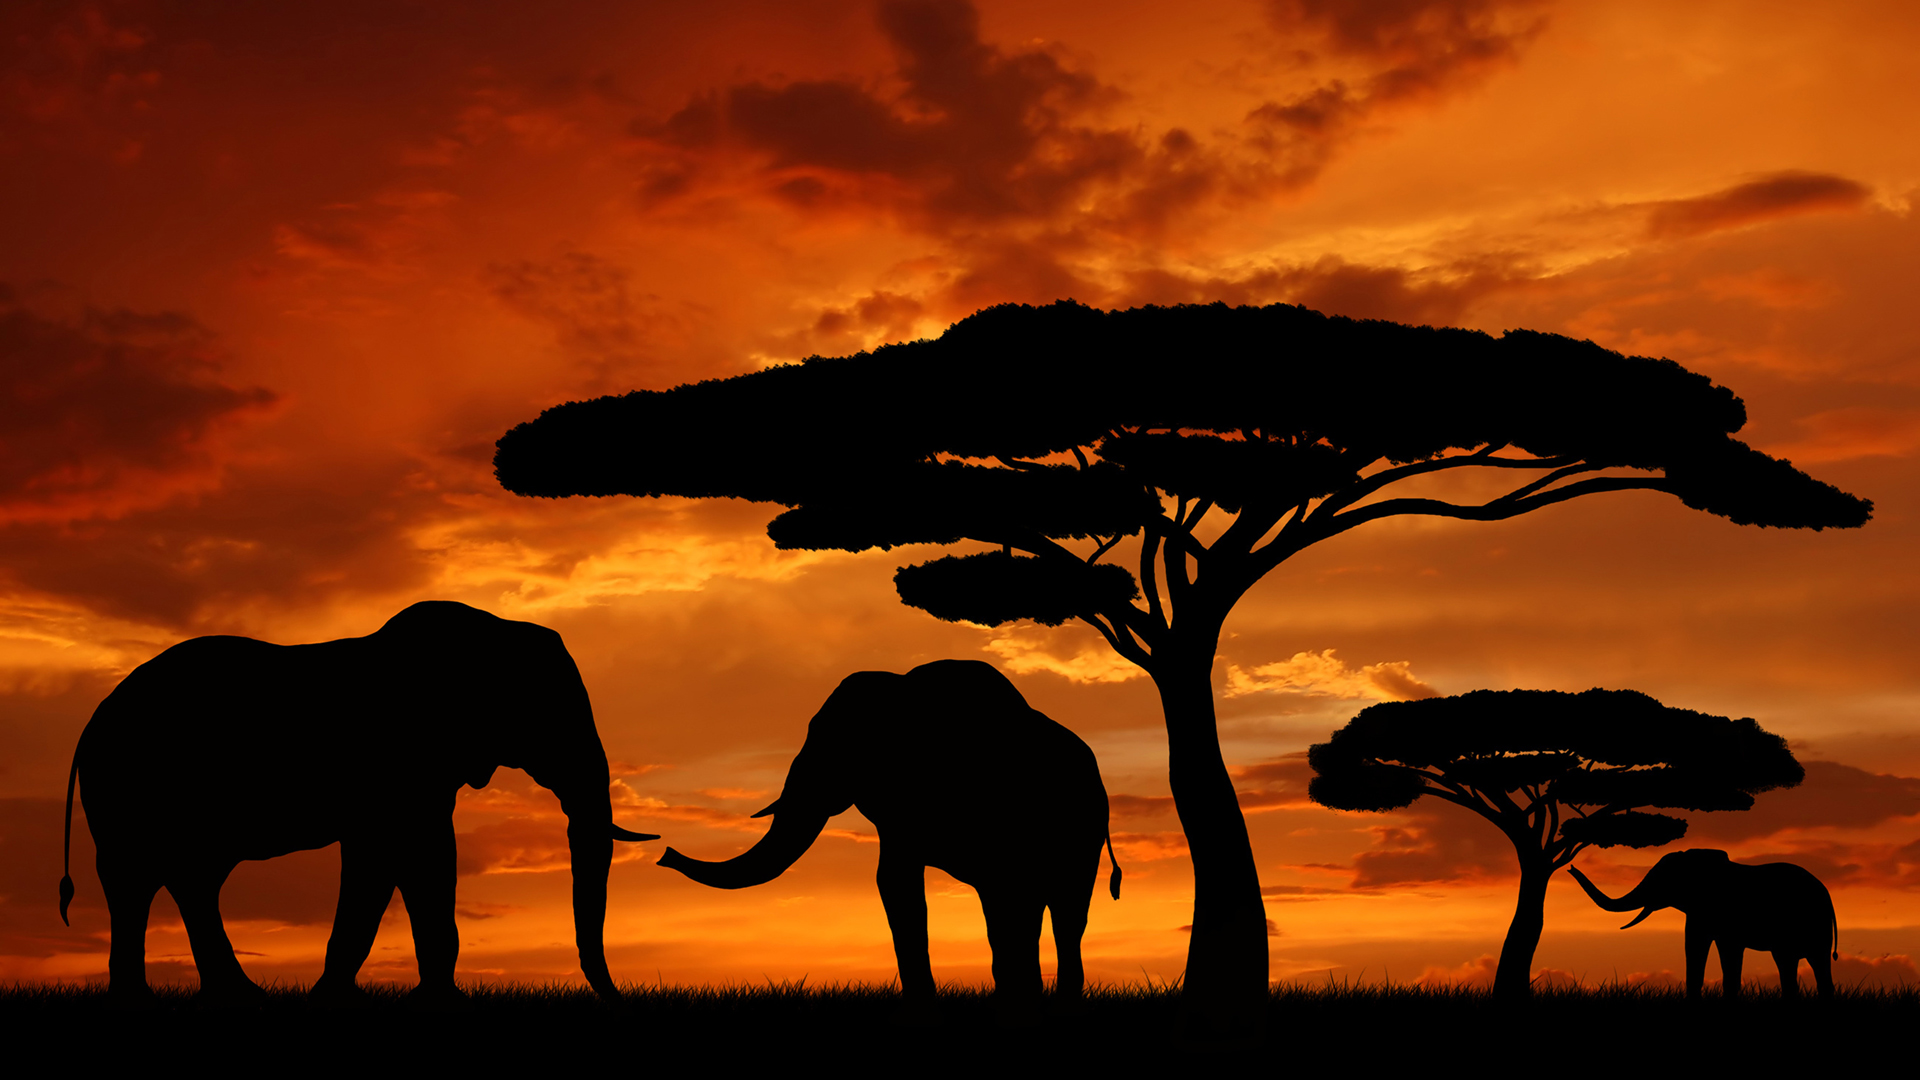 Africa Silhouettes Elephants Wallpaper